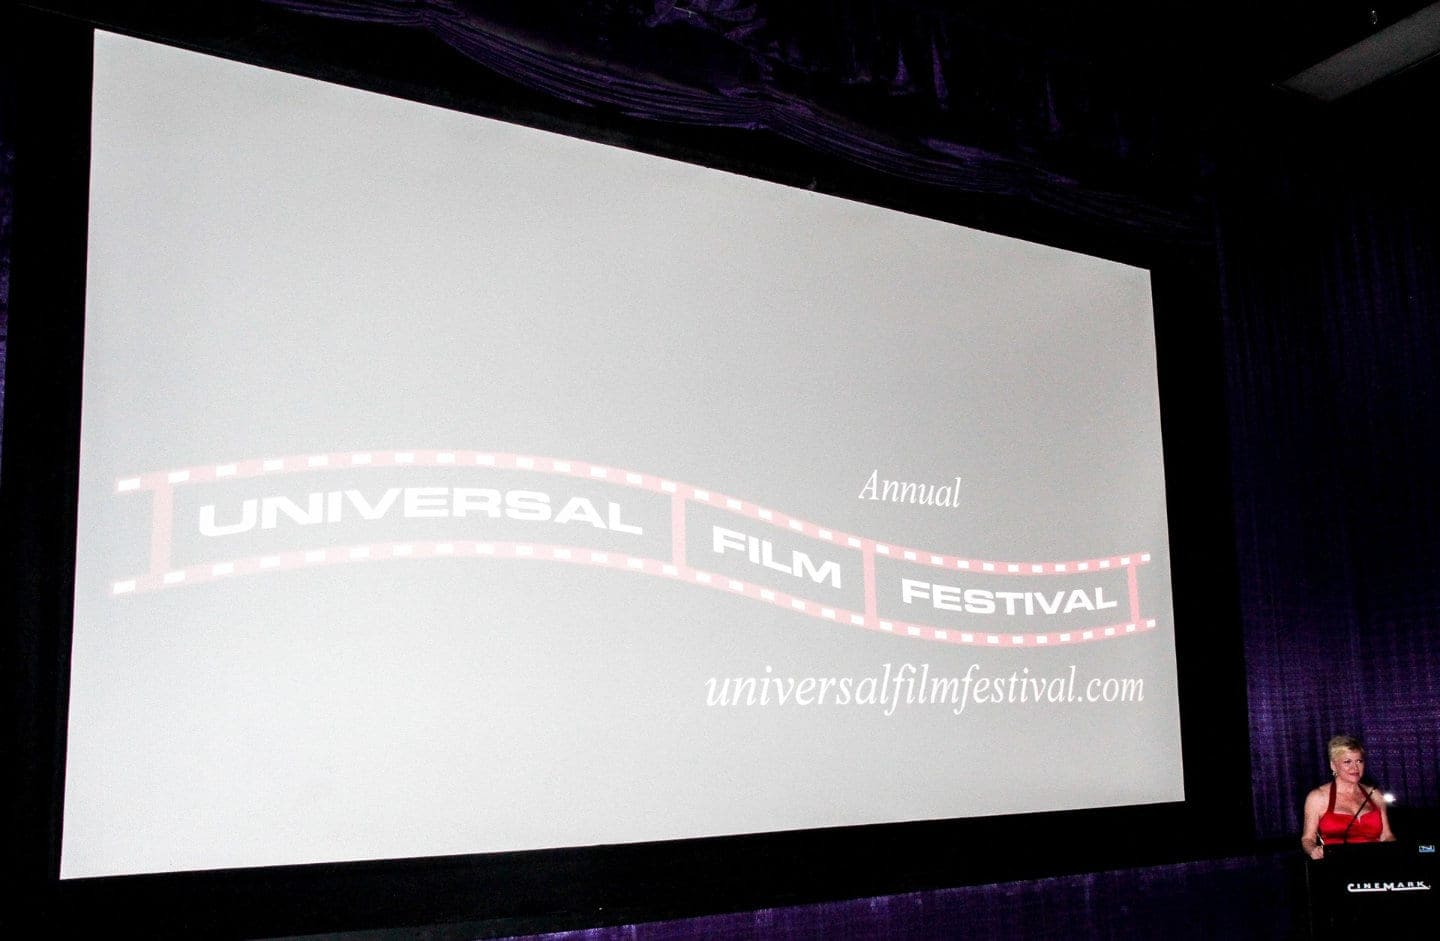 Short Films Festivals That Have No Submission Fees - Universal Film Festival (UFF) - Indie Shorts Mag